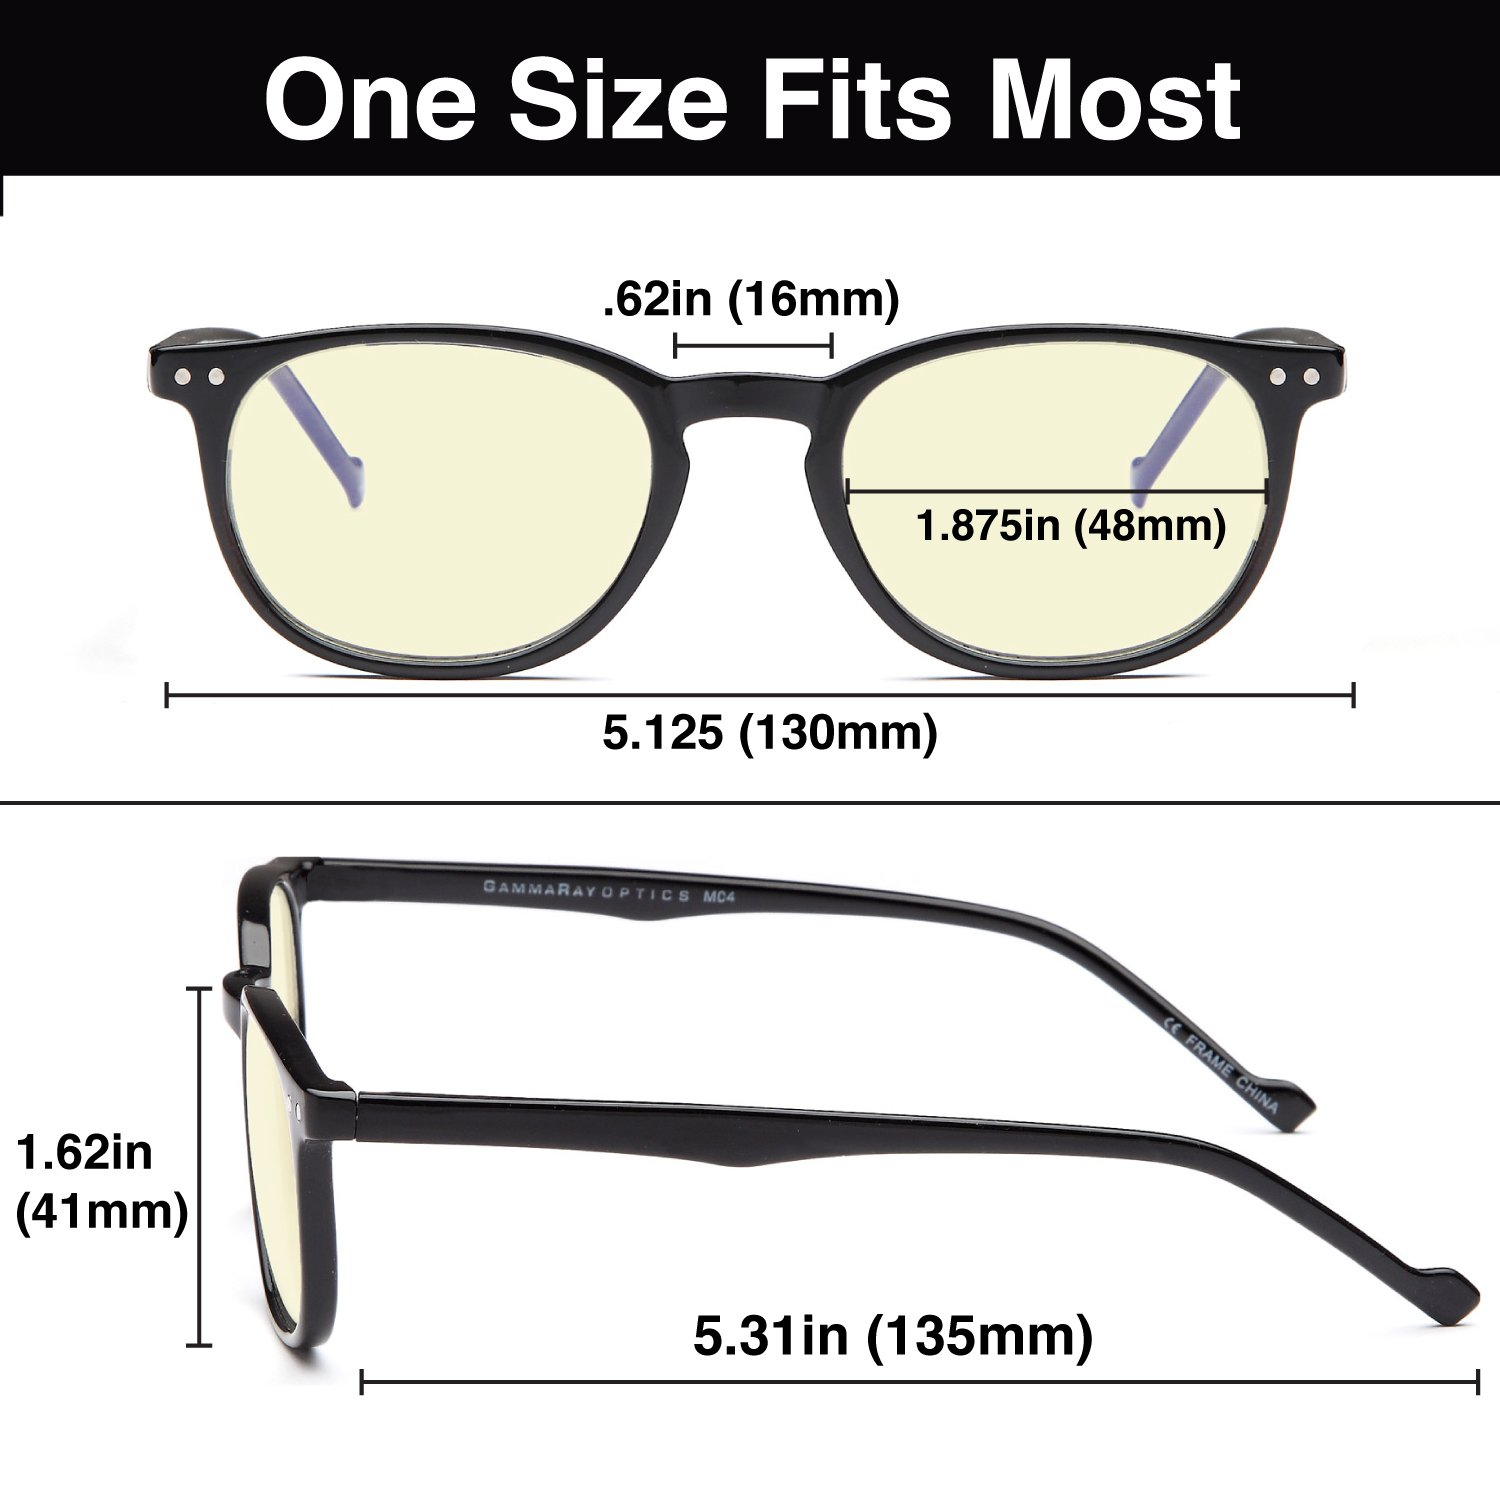 7377a83380c Amazon.com  Gamma RAY 010 Slim Vintage Computer Readers Reading Glasses  Anti Reflective Anti Glare Anti Eyestrain Lens for Digital Screens